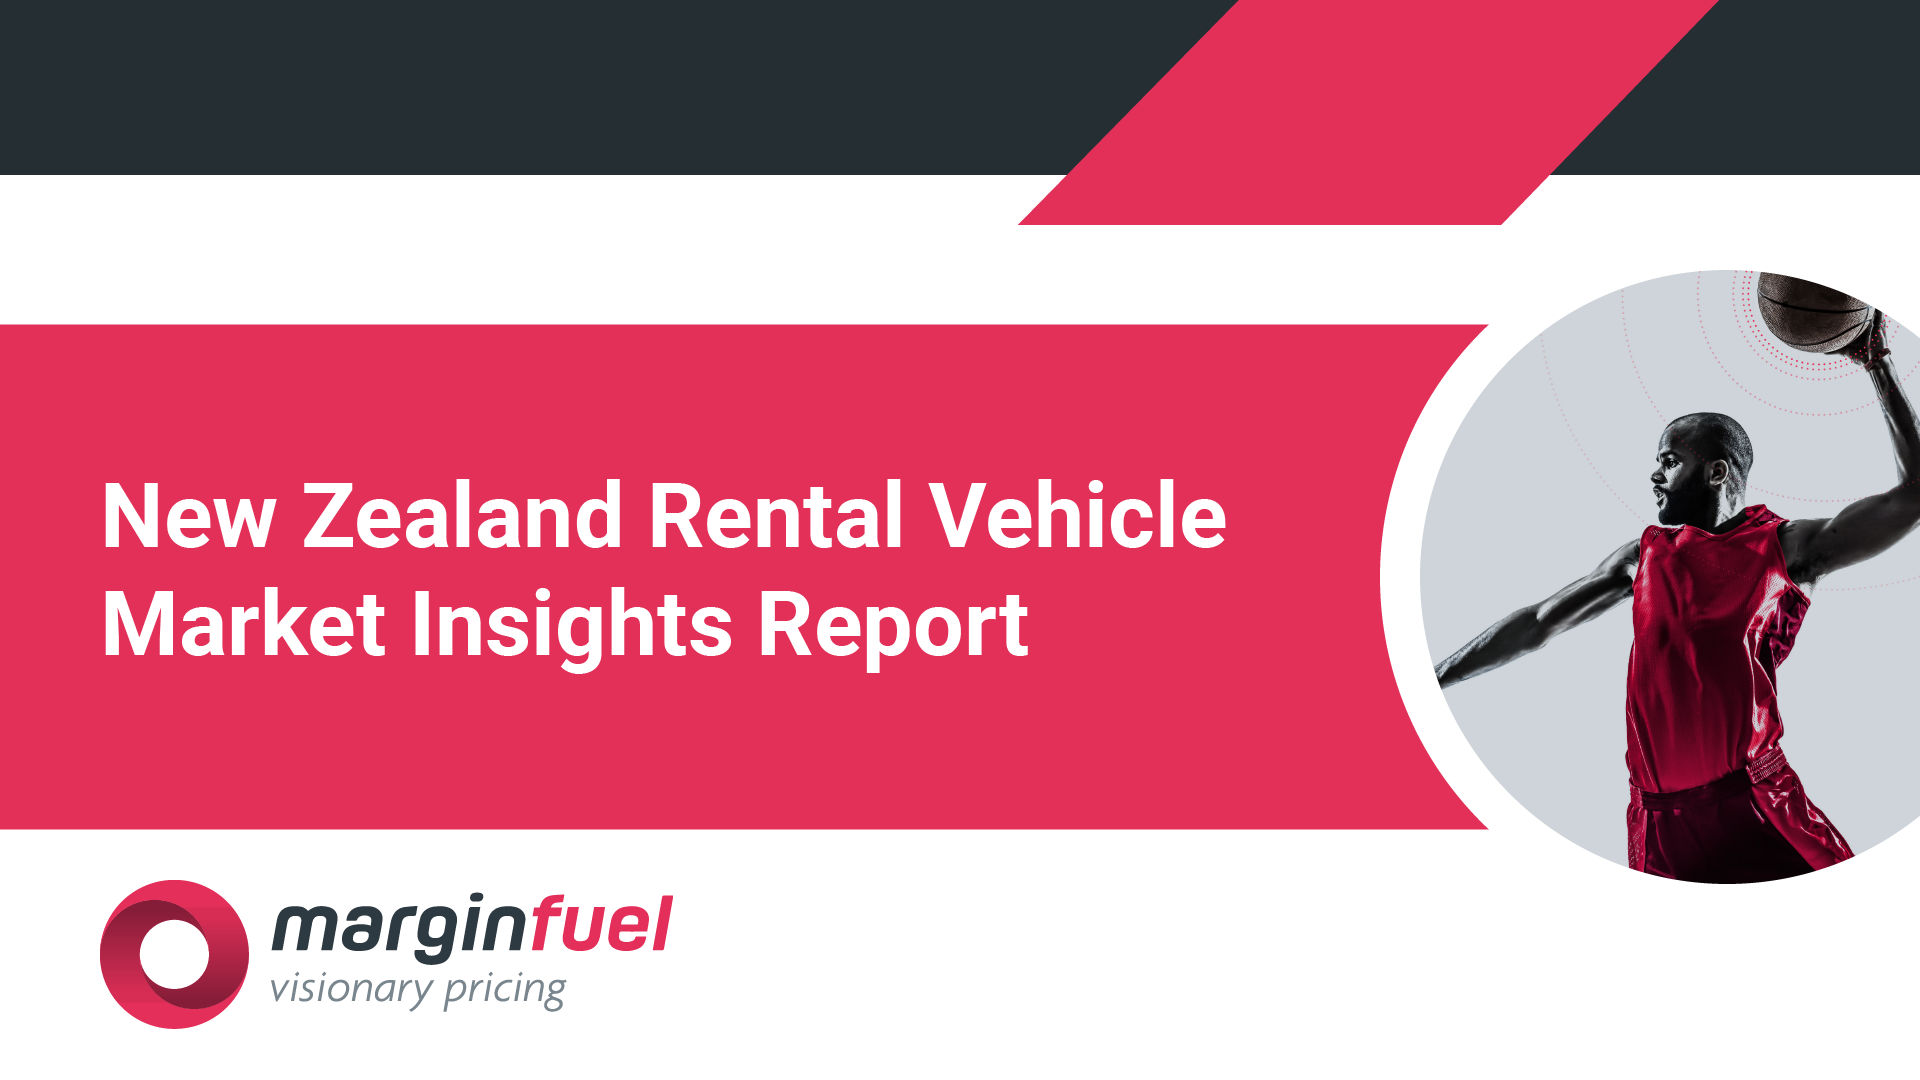 New Zealand Rental Vehicle Market Insights Report - November 2018